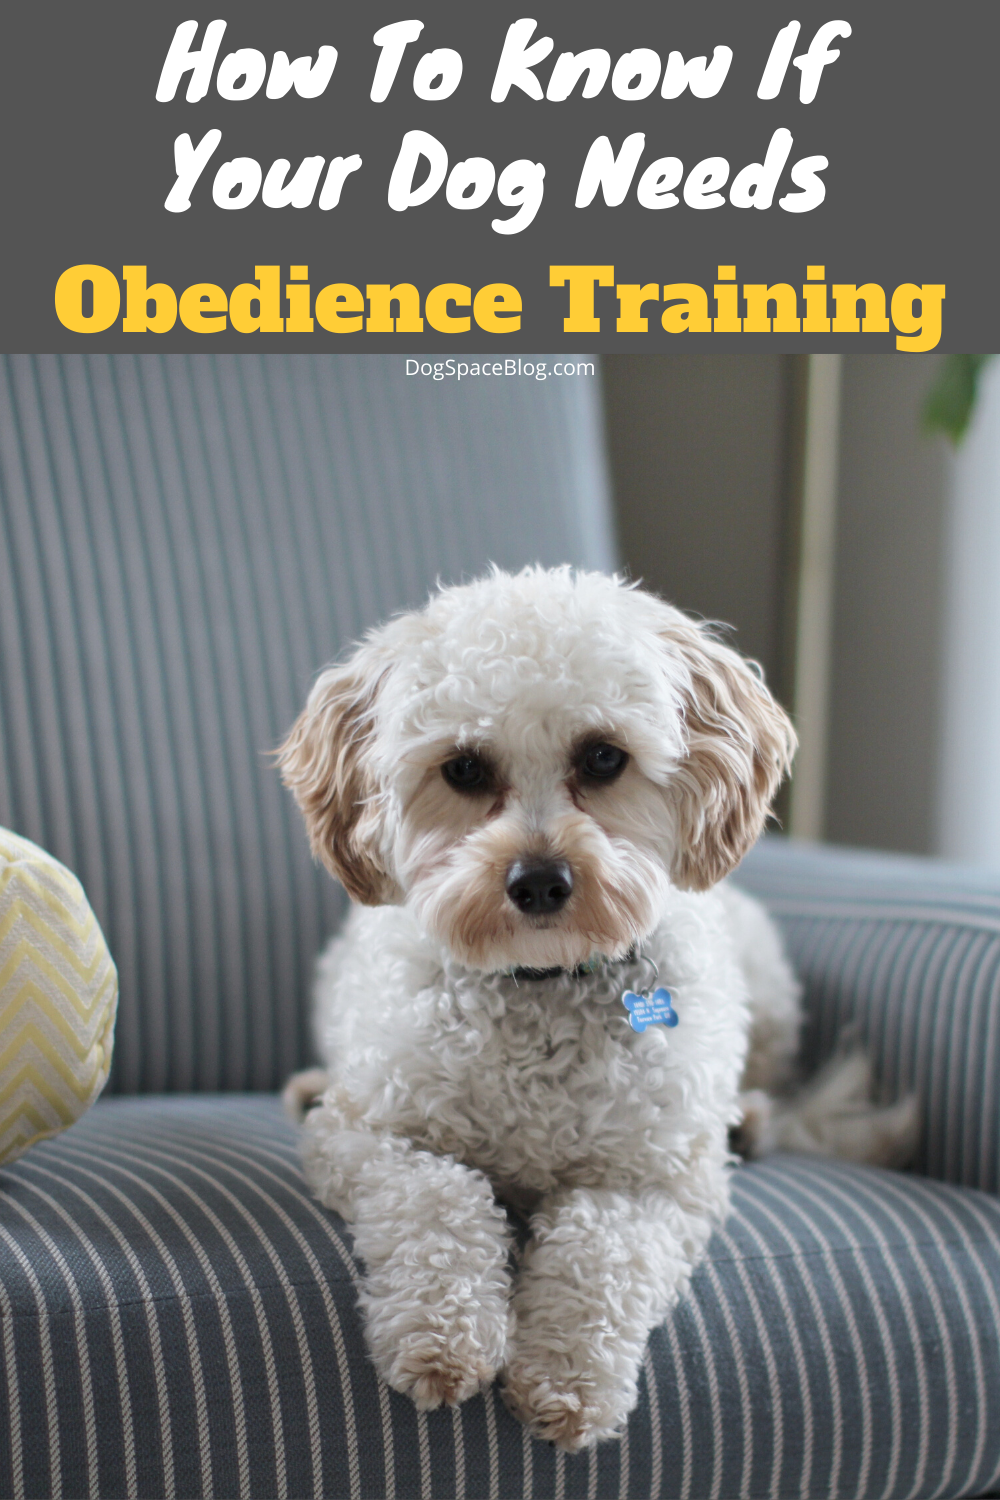 How To Know If Your Dog Needs Obedience Training Dogspaceblog In 2020 Dog Training Dog Deals Cute Dogs Breeds